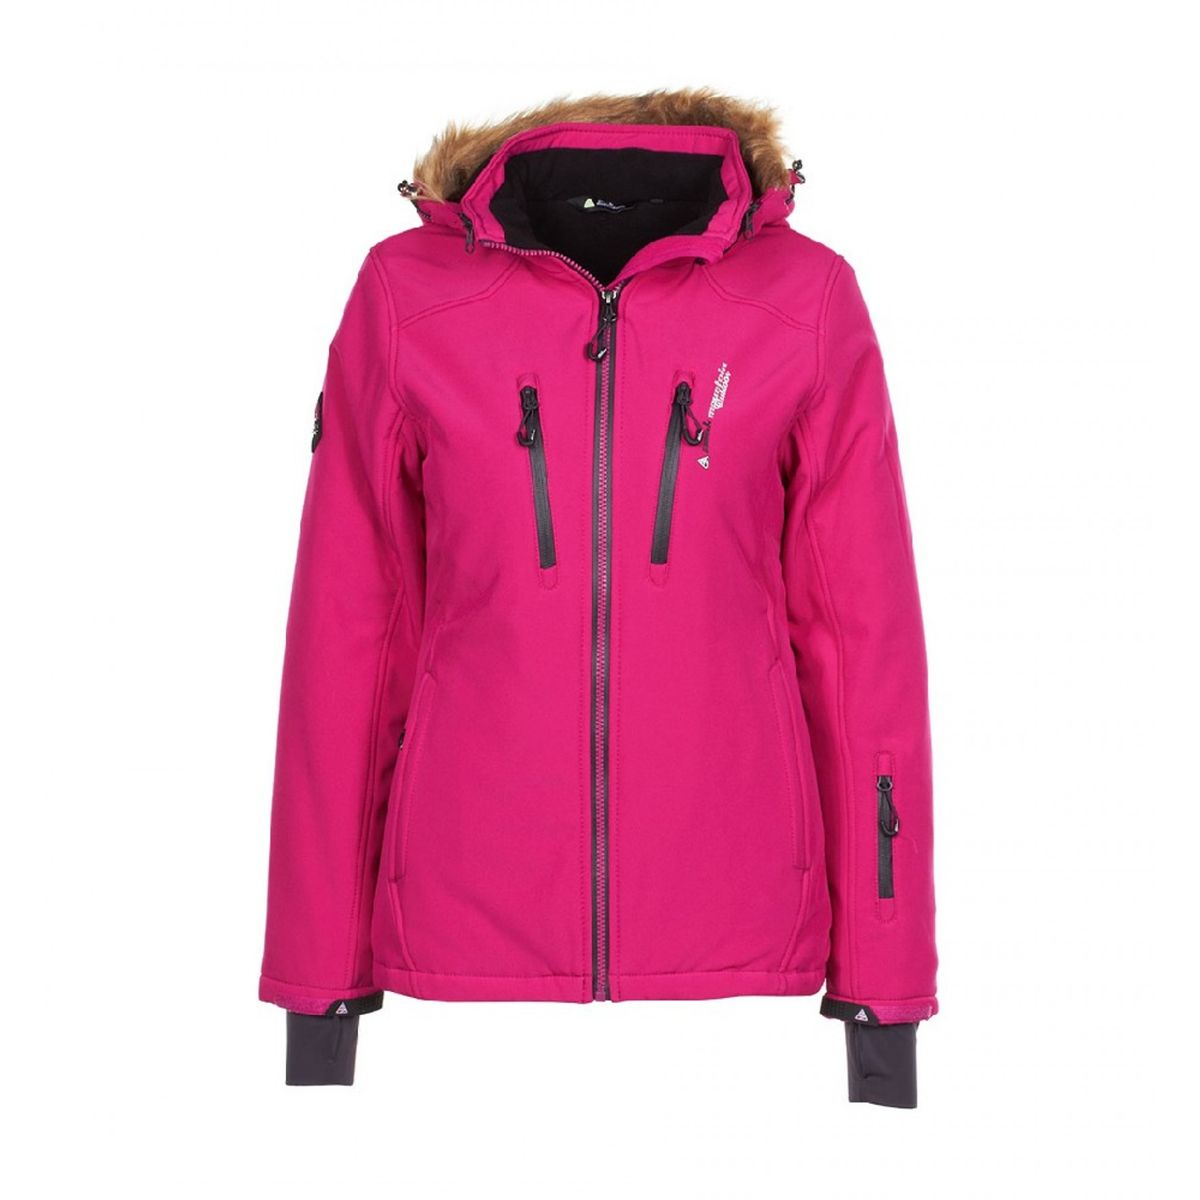 Peak mountain blouson de ski femme anada fushia Peak Mountain | La